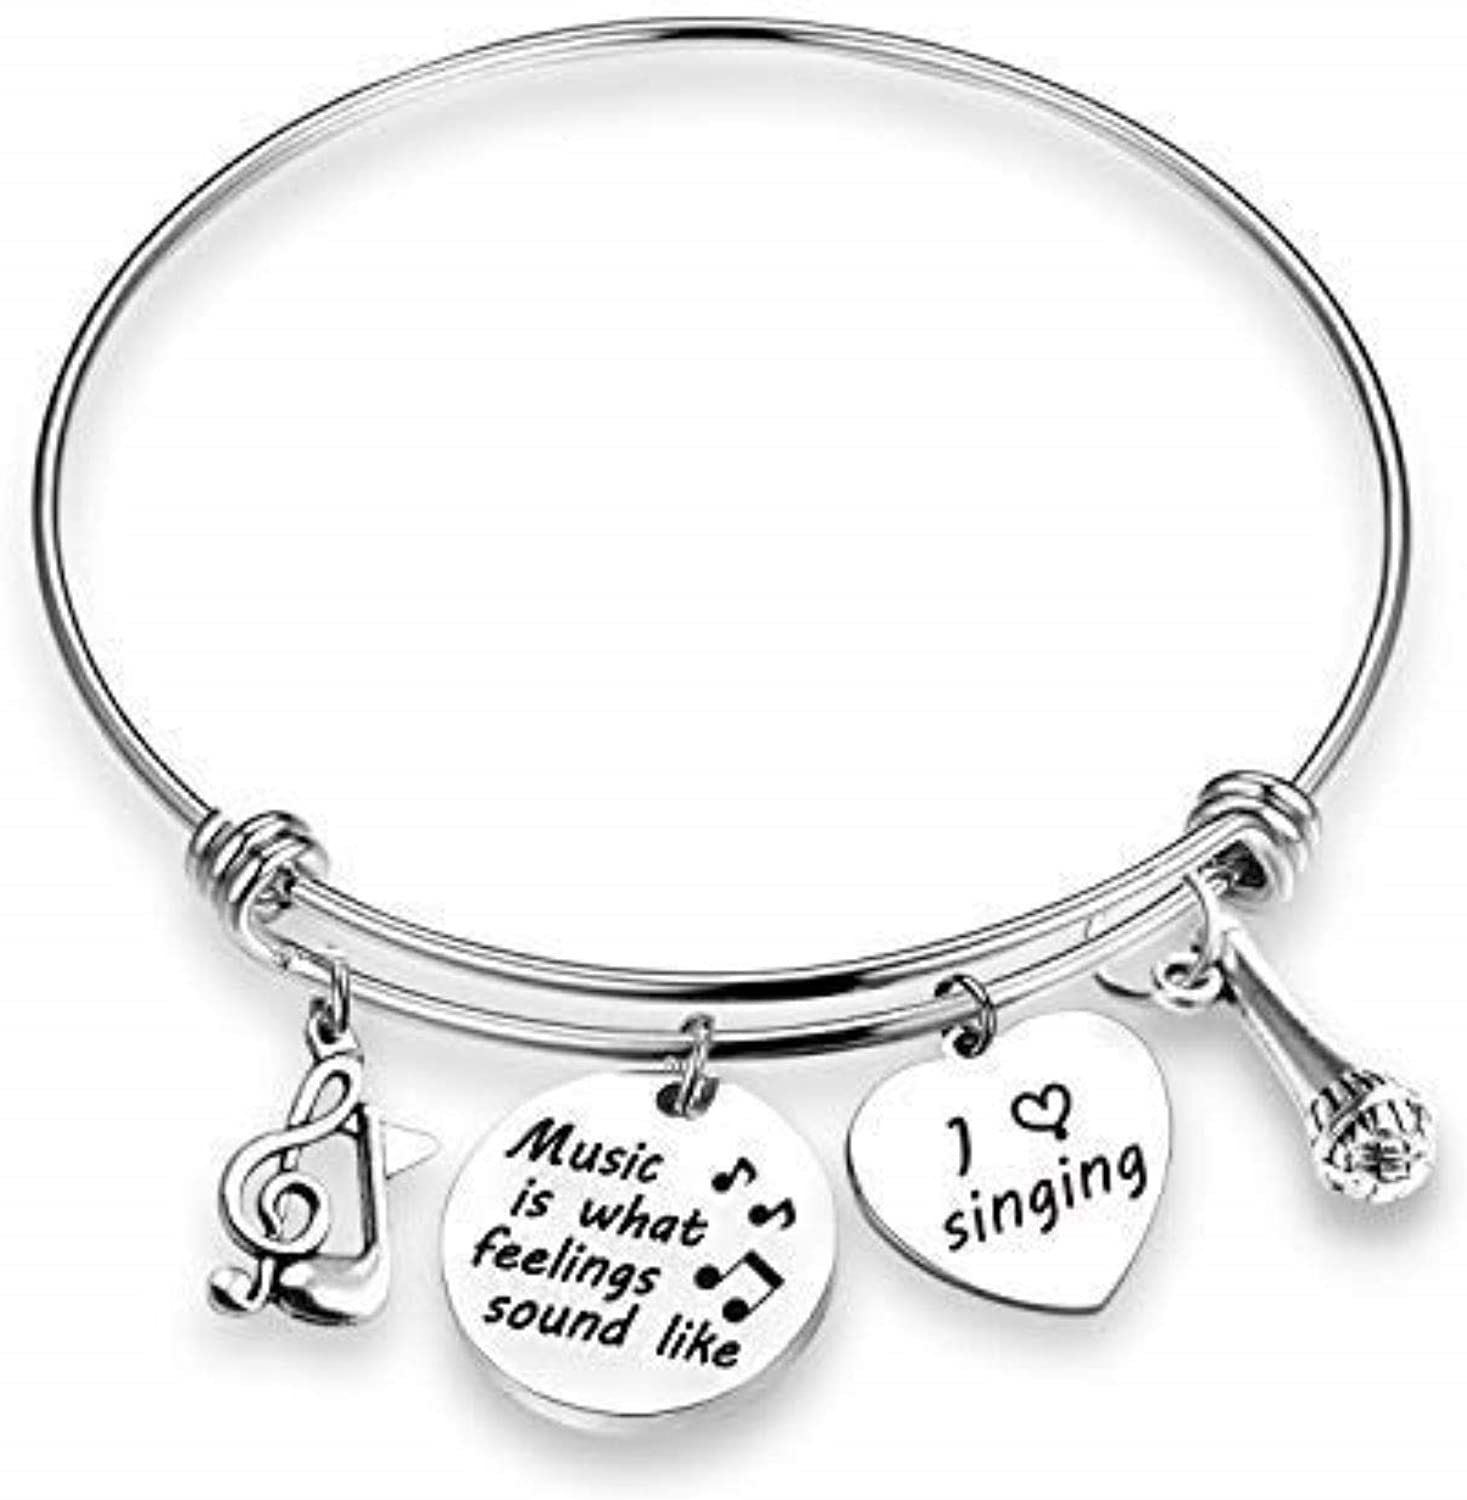 Ribukat Music Lover Bracelet Music is What Feelings Sound Like Music Lover Gifts Musical Jewelry Singing Bracelet Singer Charm Jewelry